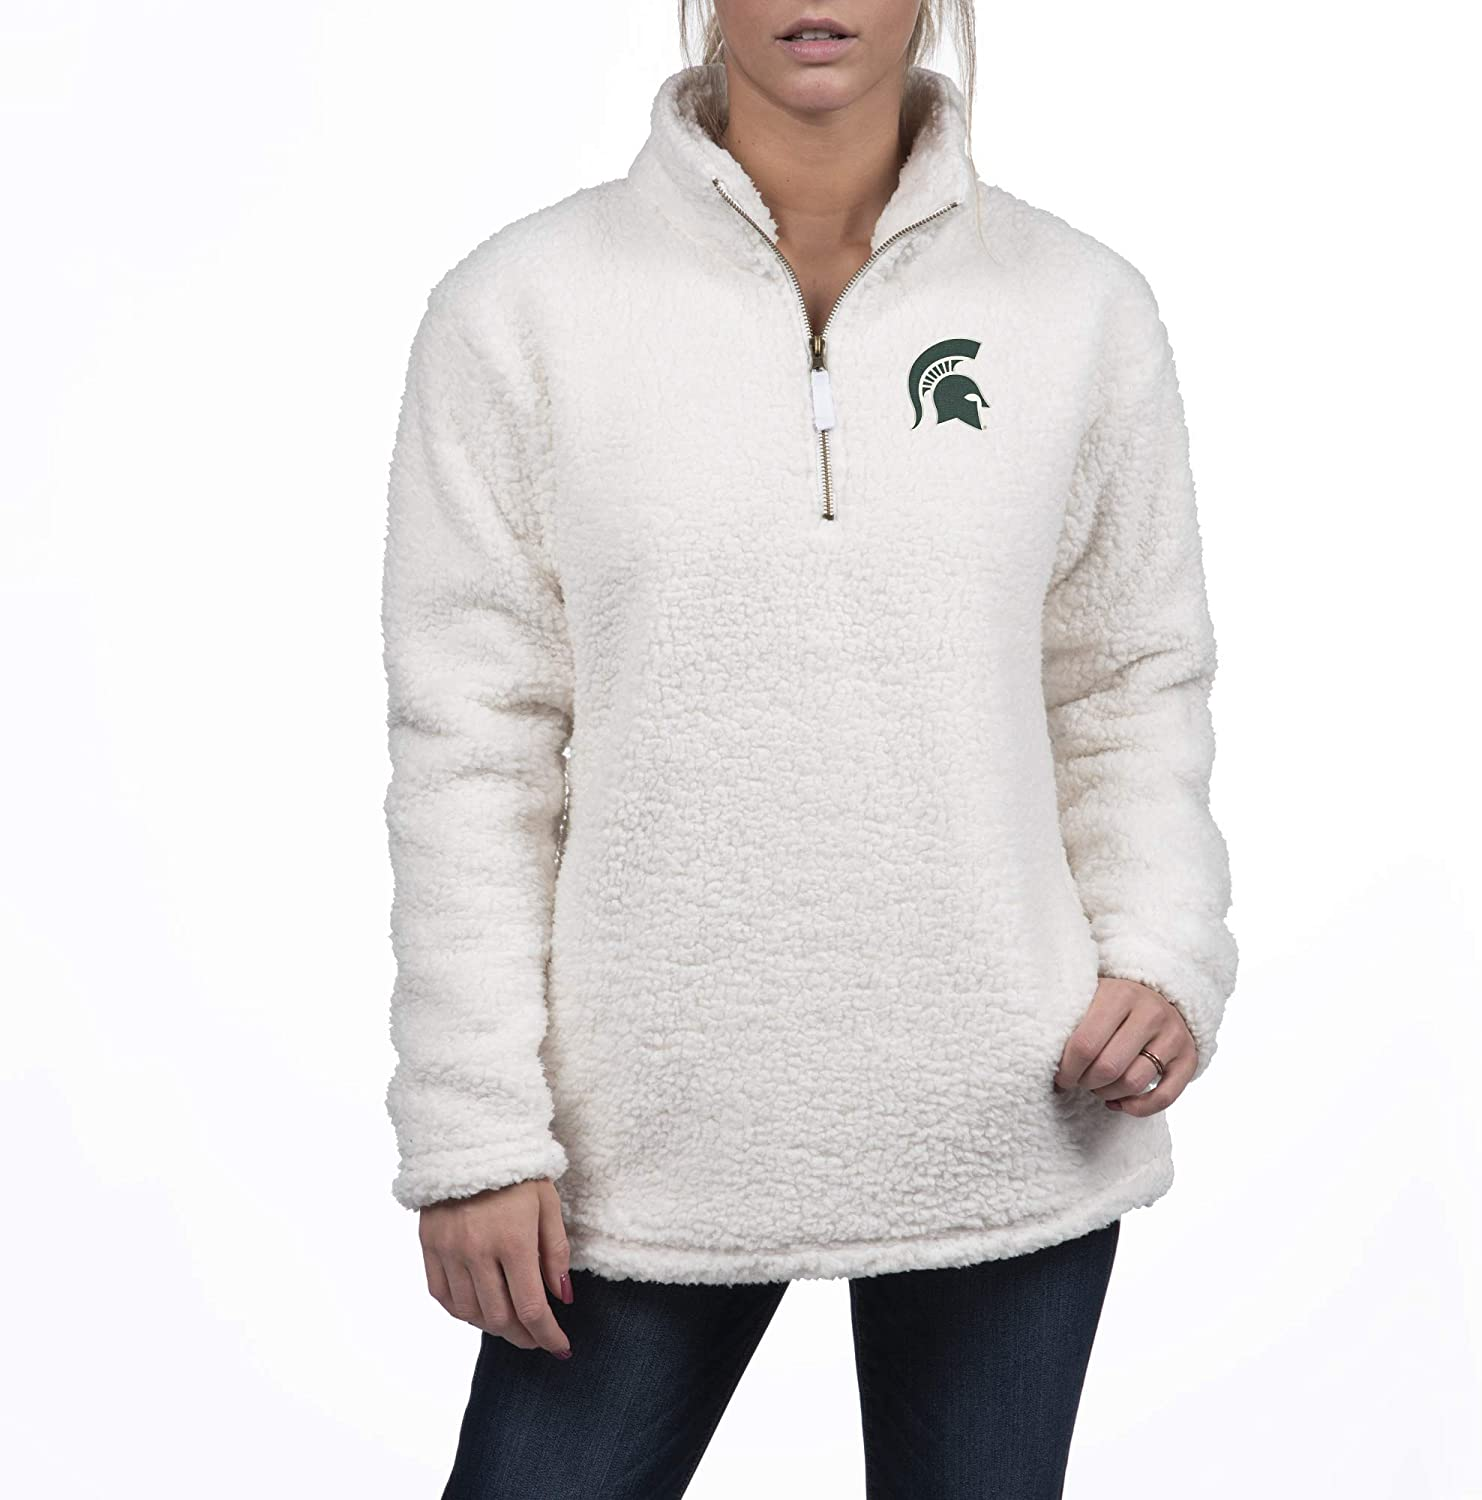 New Shipping Free Shipping Top of the World Portland Mall Womens Cozy 1 Sherpa Zip 2 Pullover